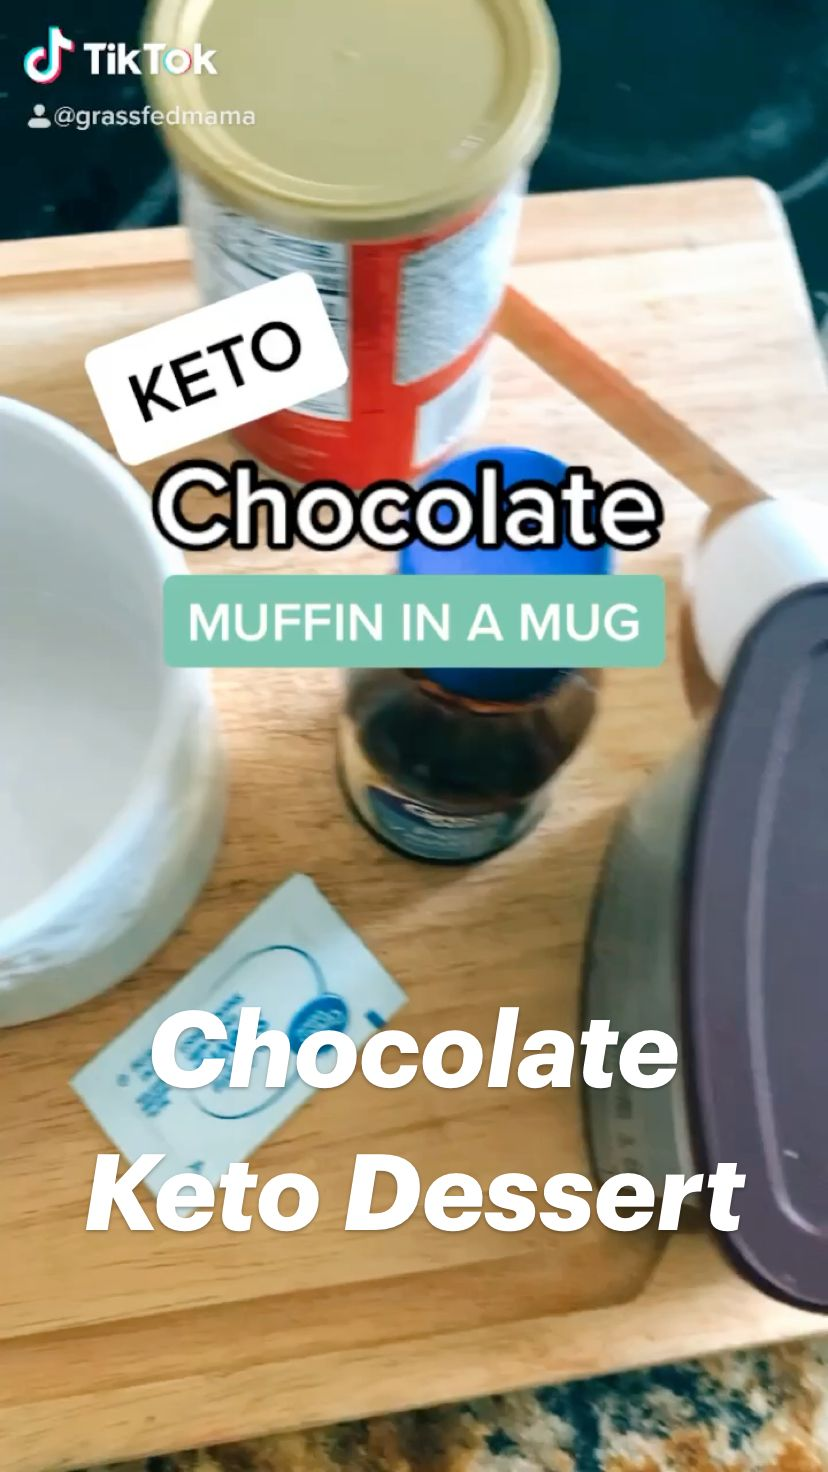 Chocolate Keto Dessert